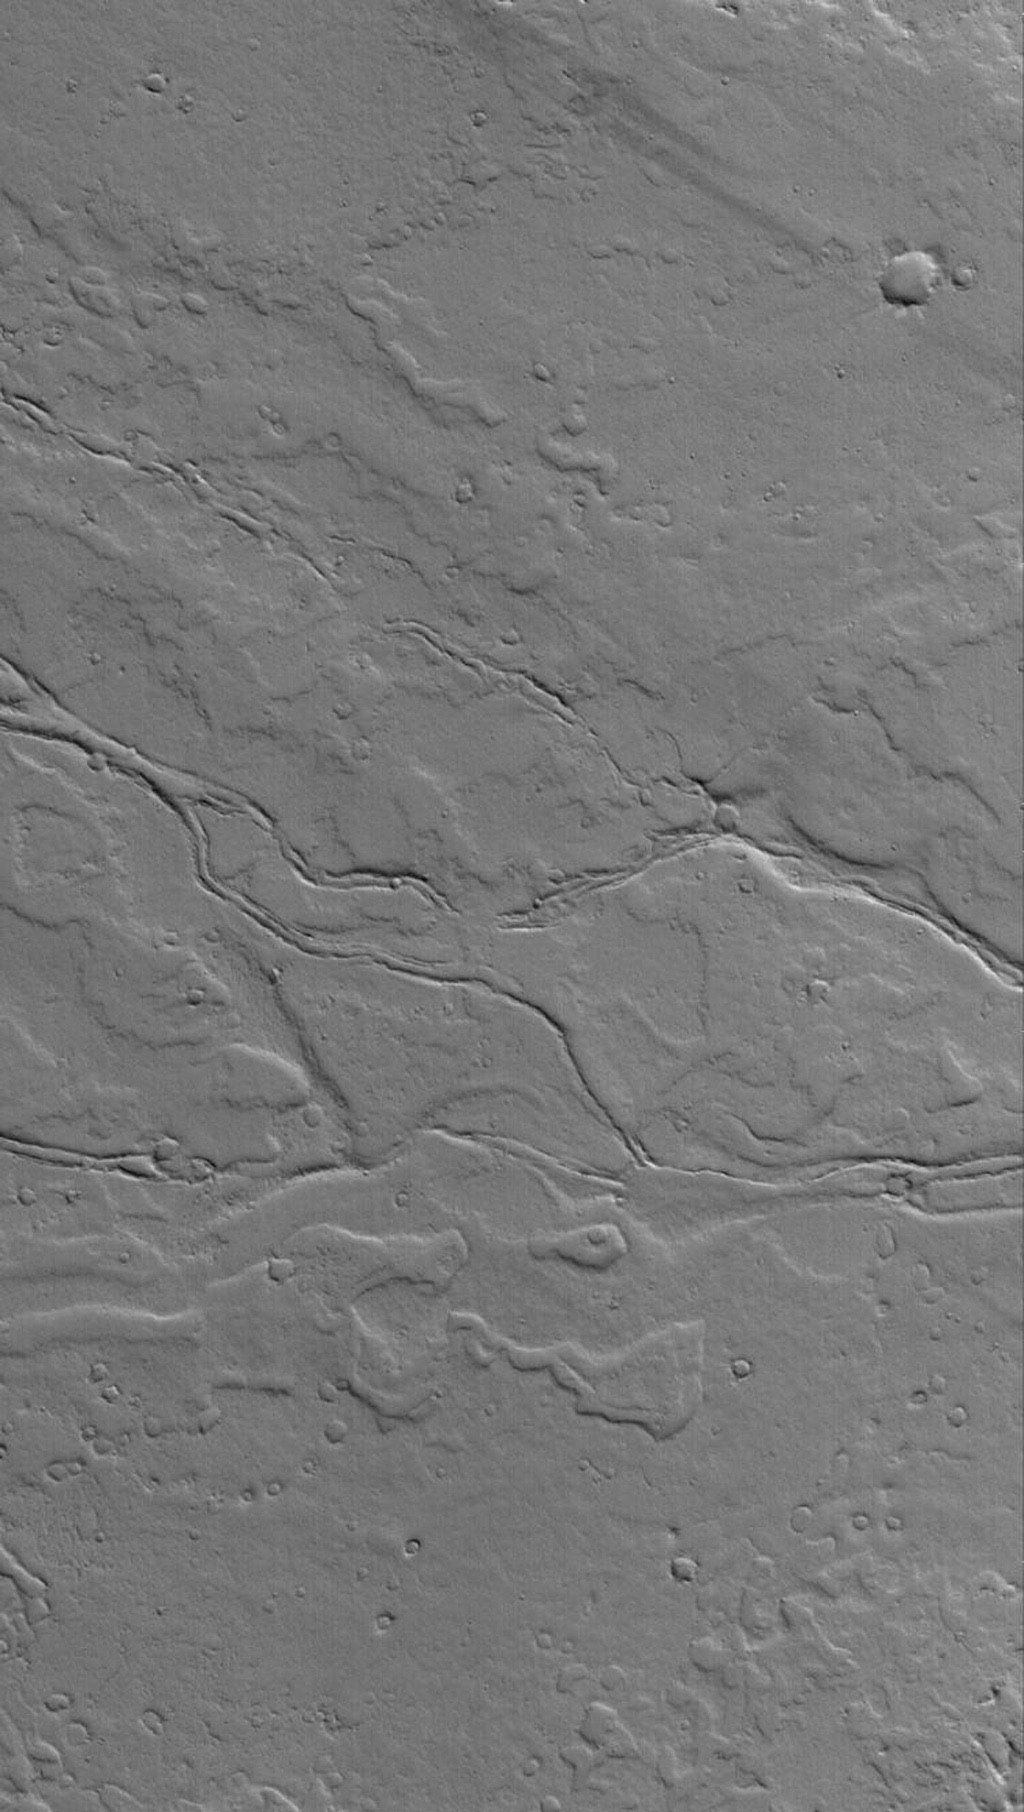 This NASA Mars Global Surveyor image shows ancient, dust-covered lava flows and remains of leveed lava channels located on a plain northwest of Jovis Tholus. Jovis is a relatively small volcano in the Tharsis region of Mars.